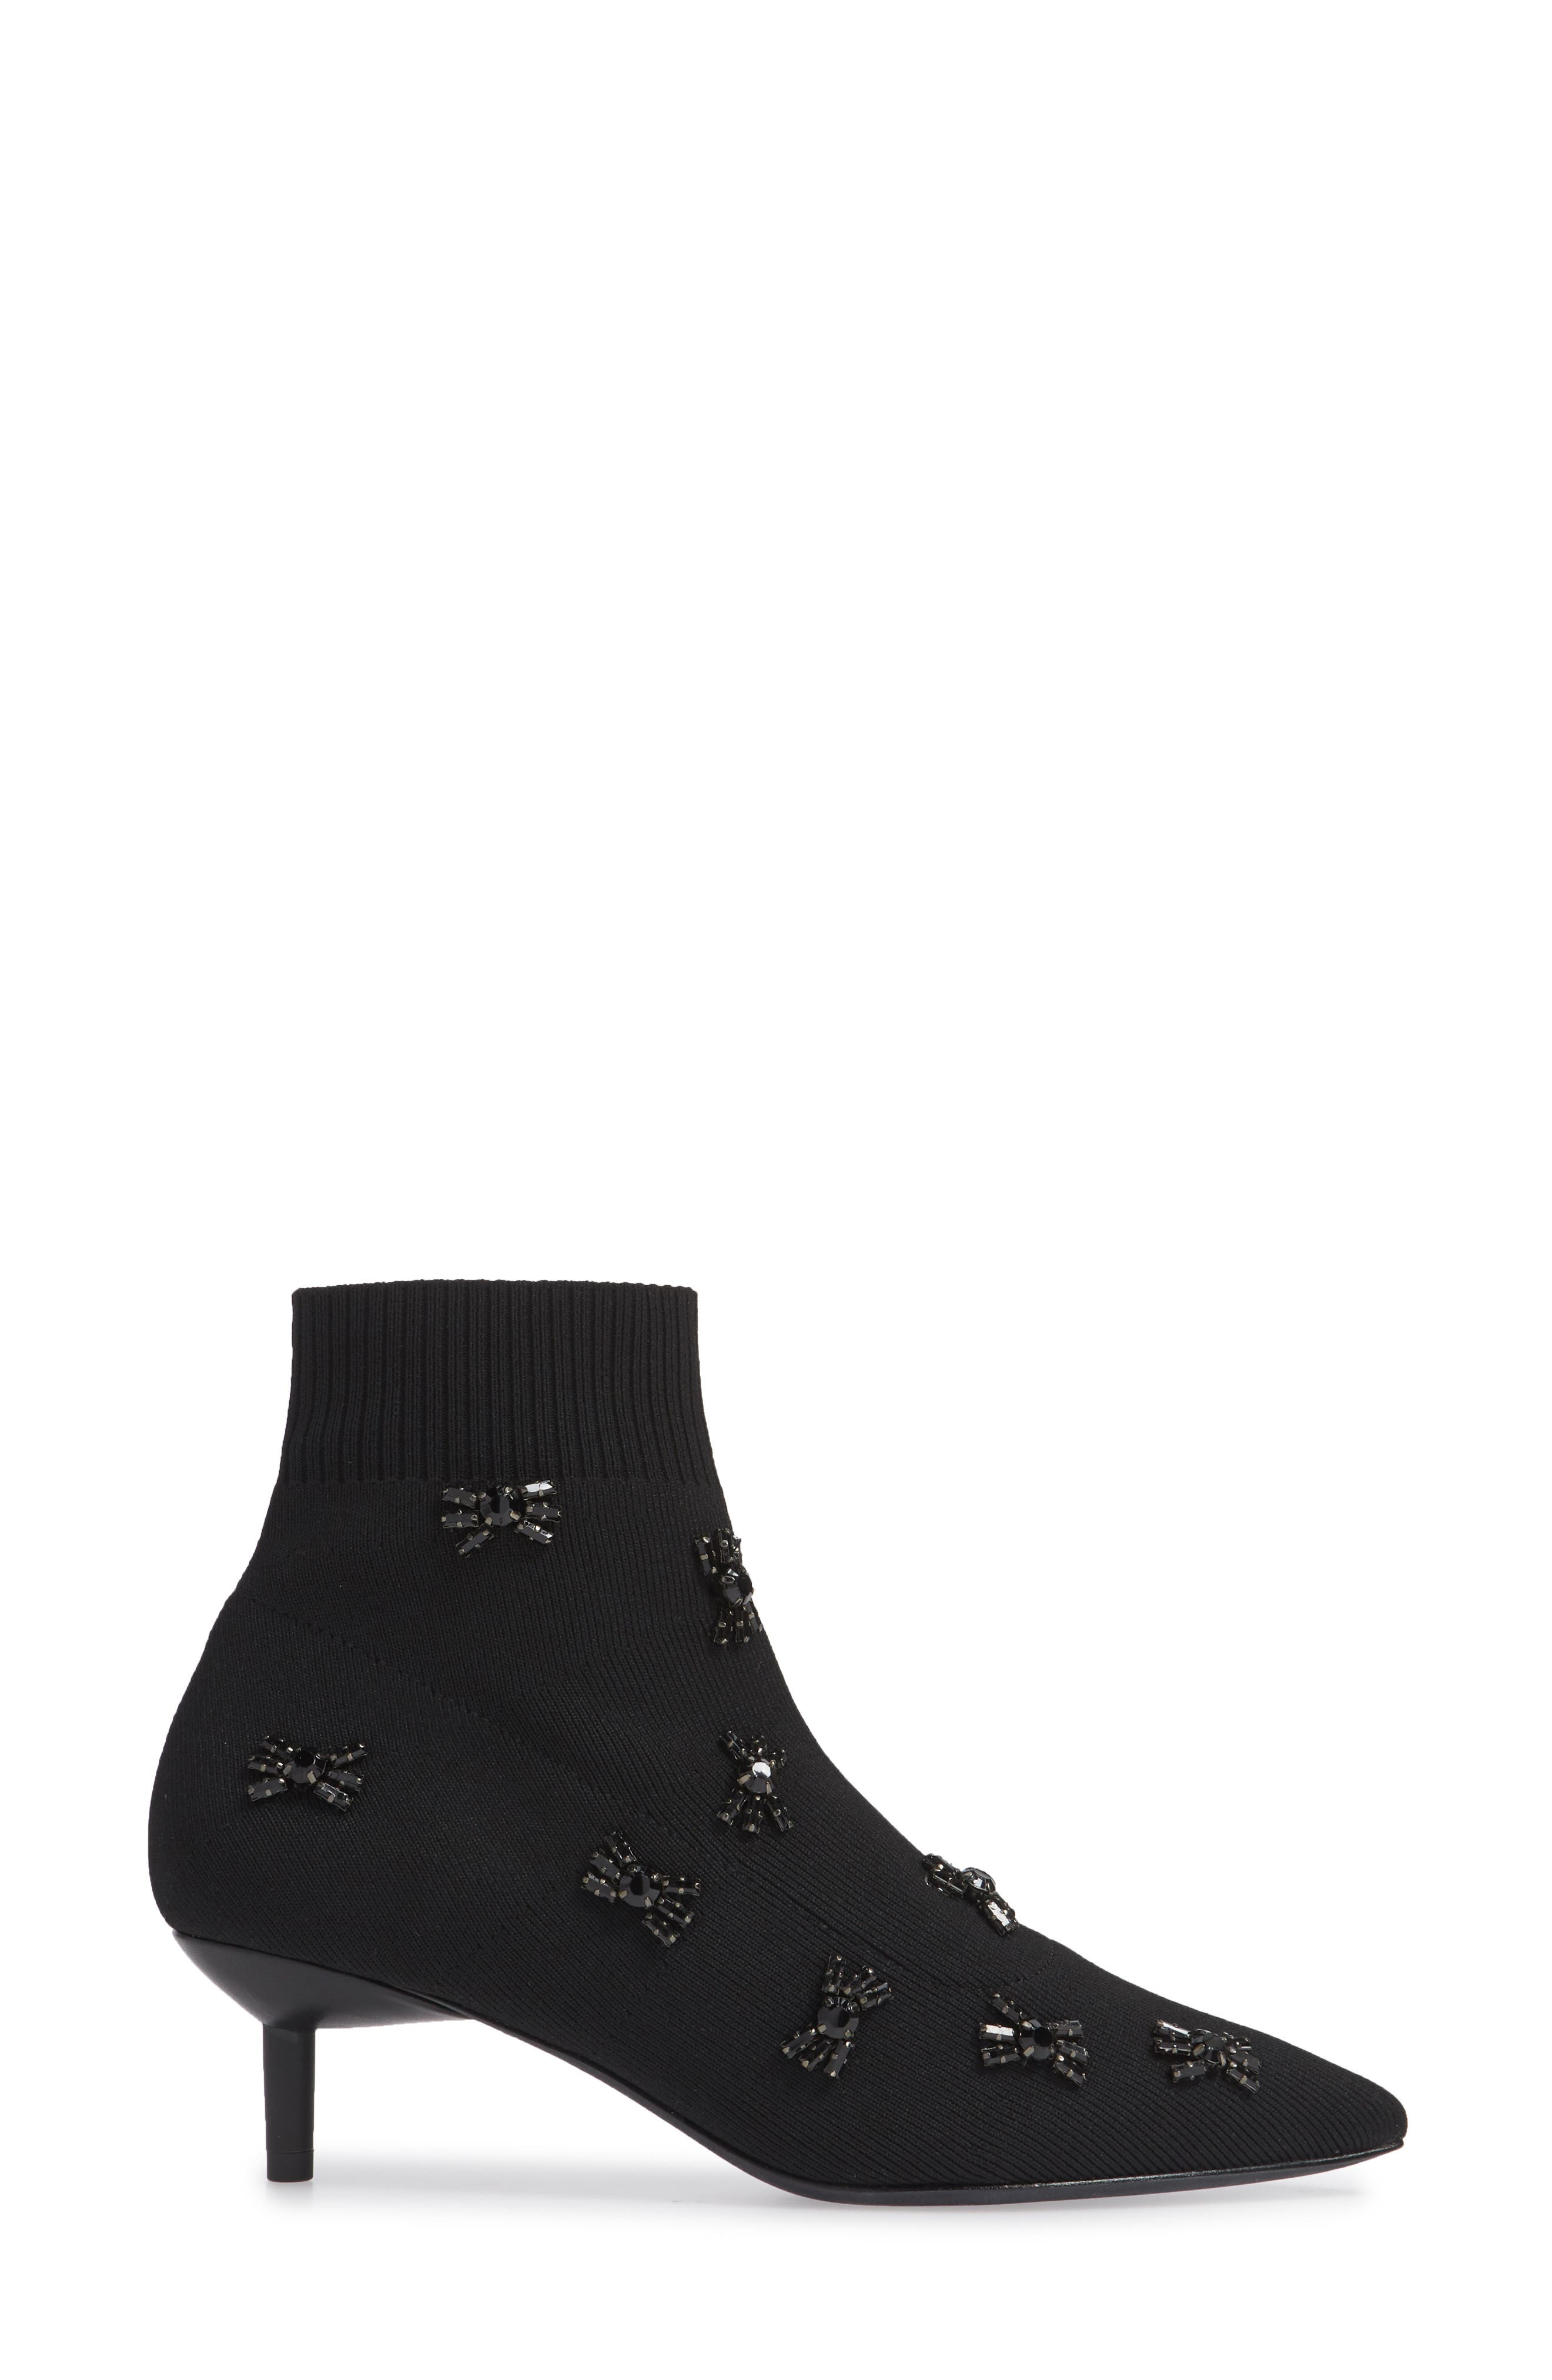 Betti Embellished Sock Bootie,                             Alternate thumbnail 3, color,                             BLACK KNIT FABRIC